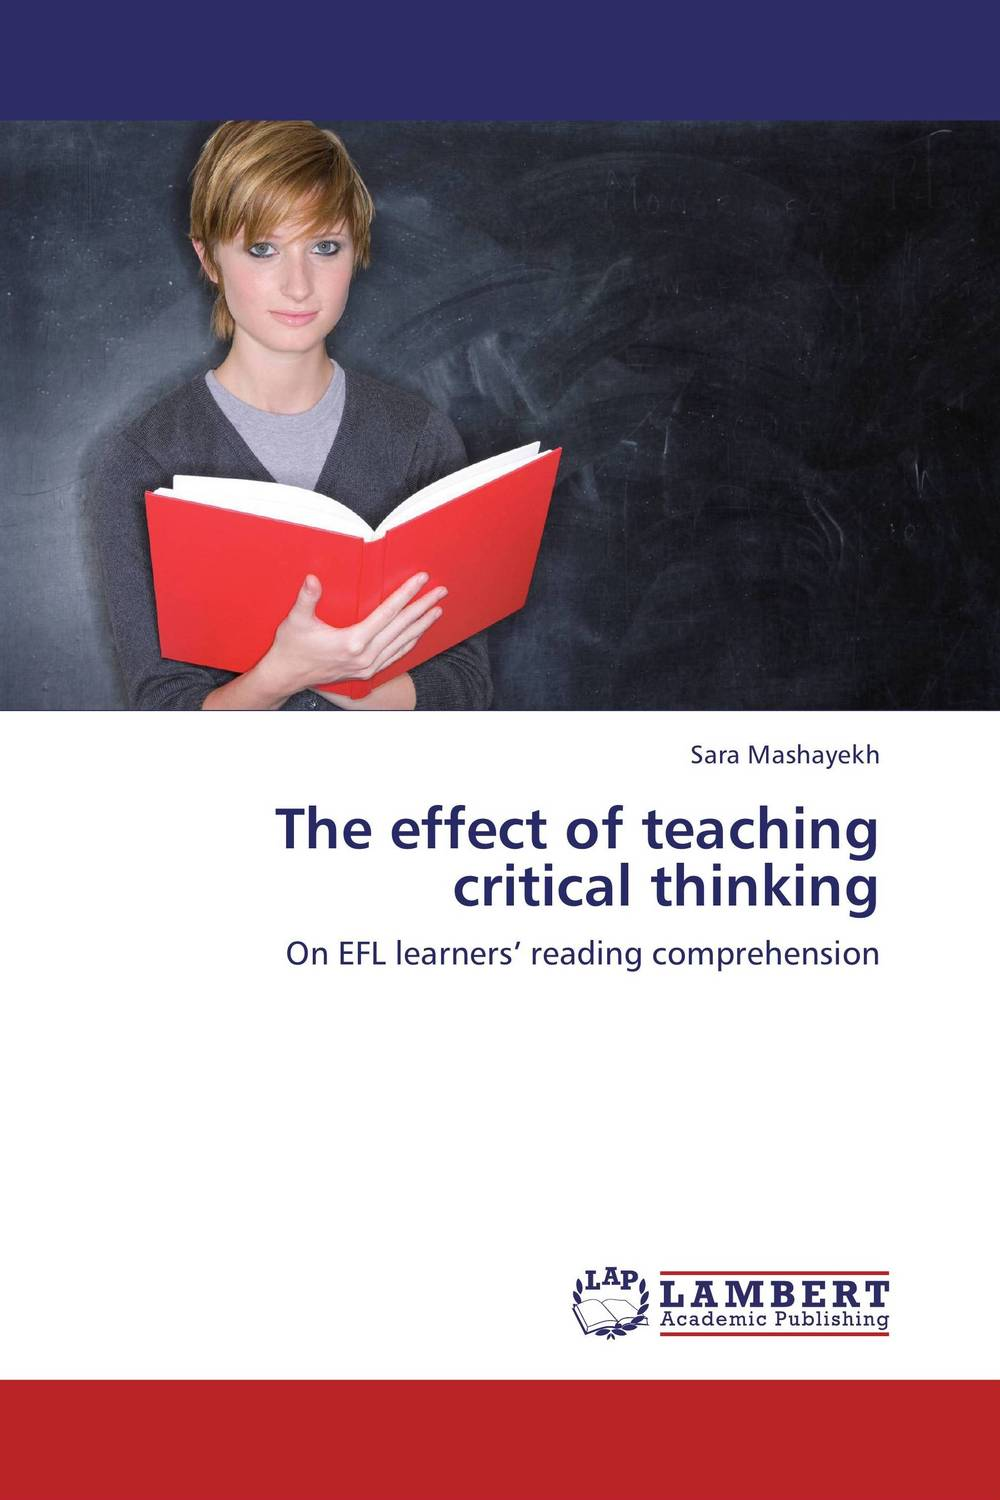 The effect of teaching critical thinking